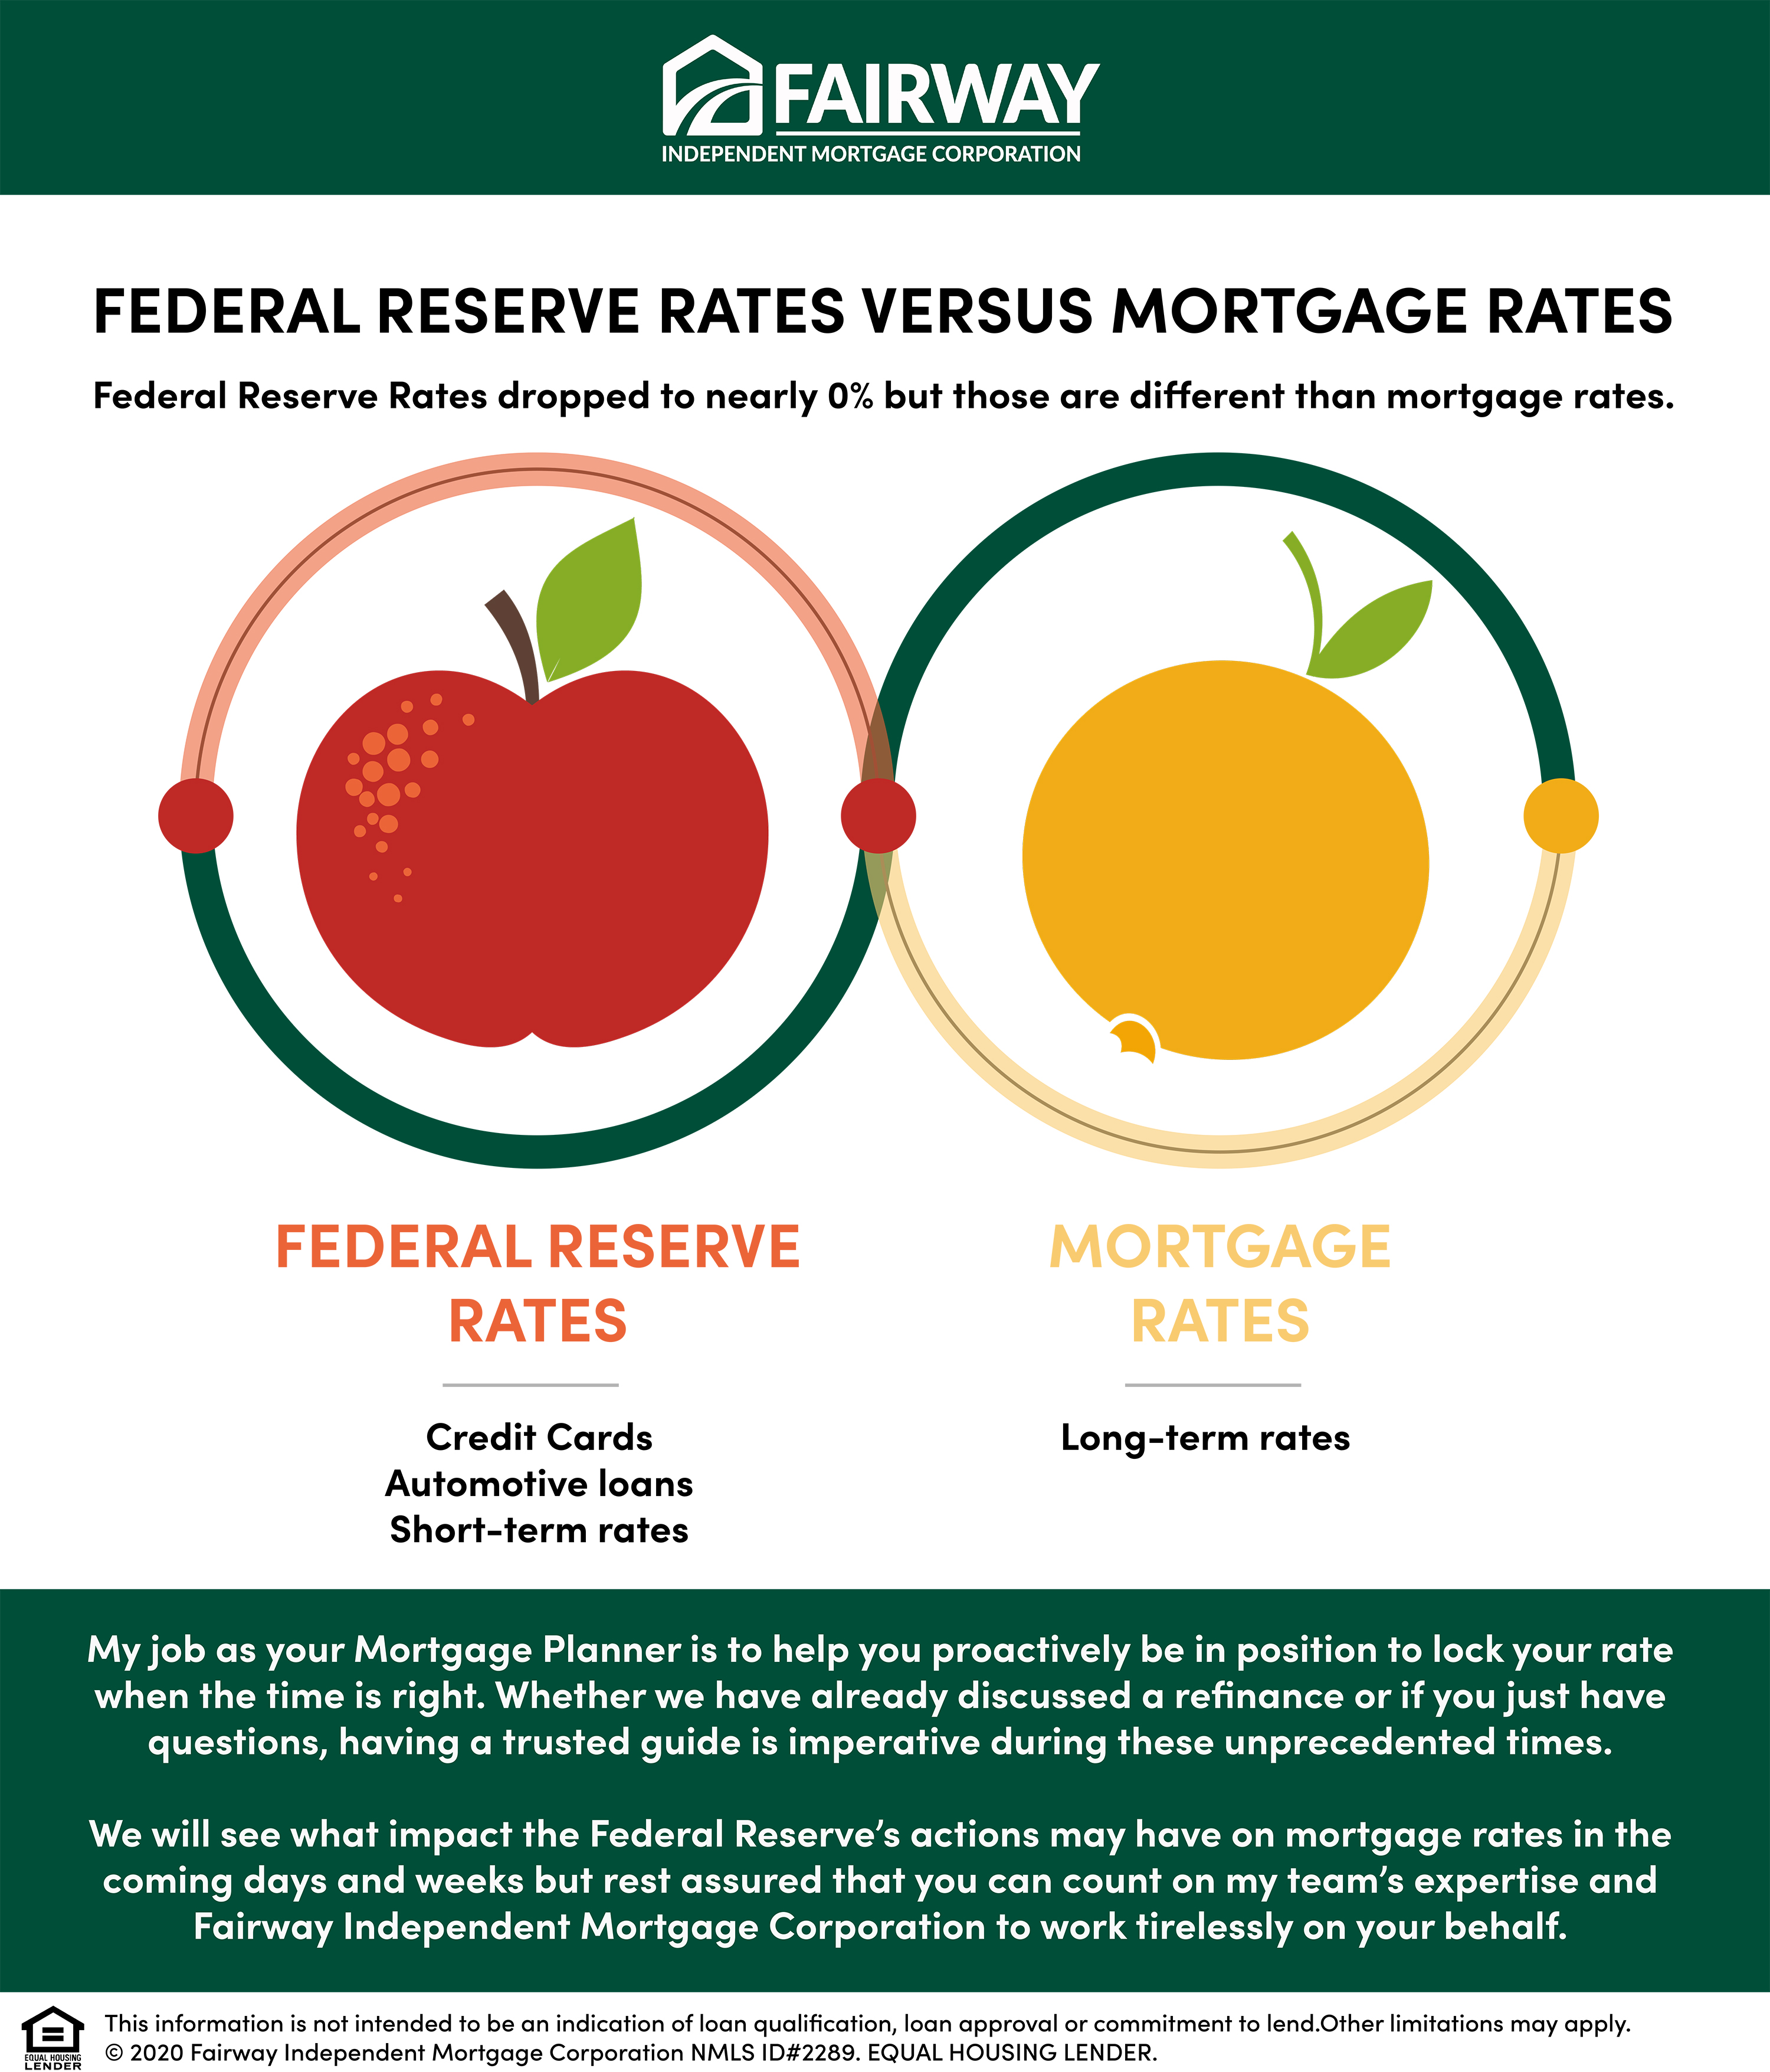 Federal Reserve Rates versus Mortgage Rates diagram with an apple and an orange